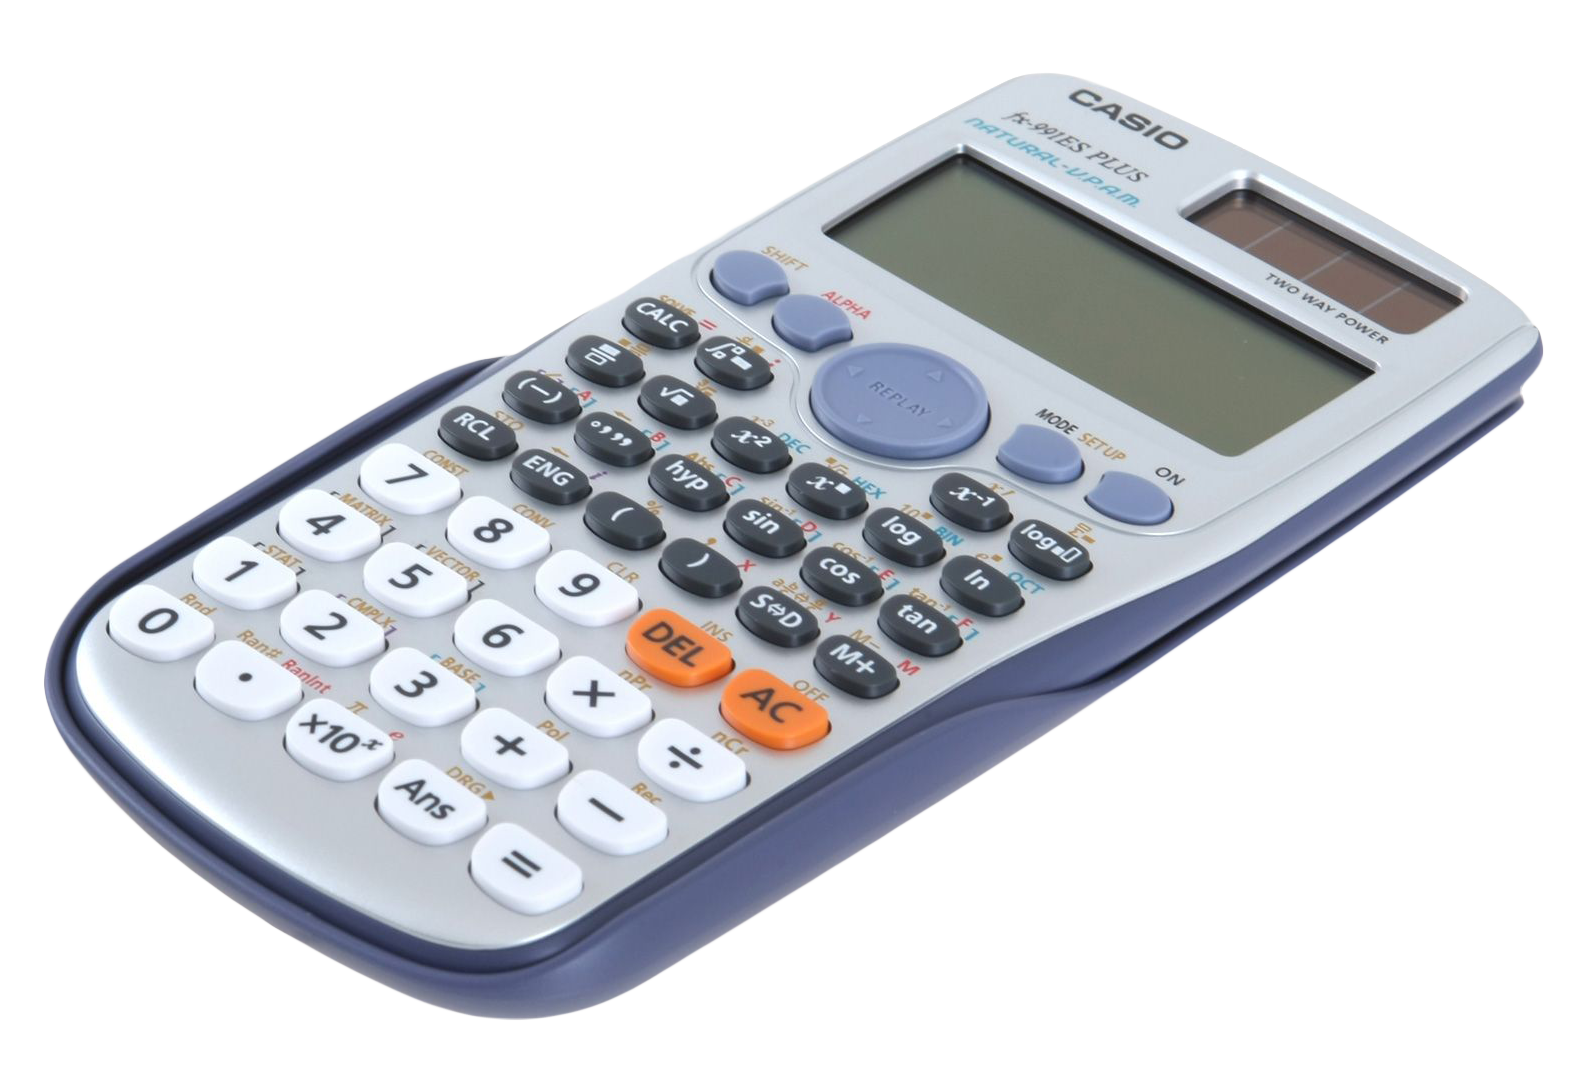 Engineering png image purepng. Calculator clipart scientific calculator